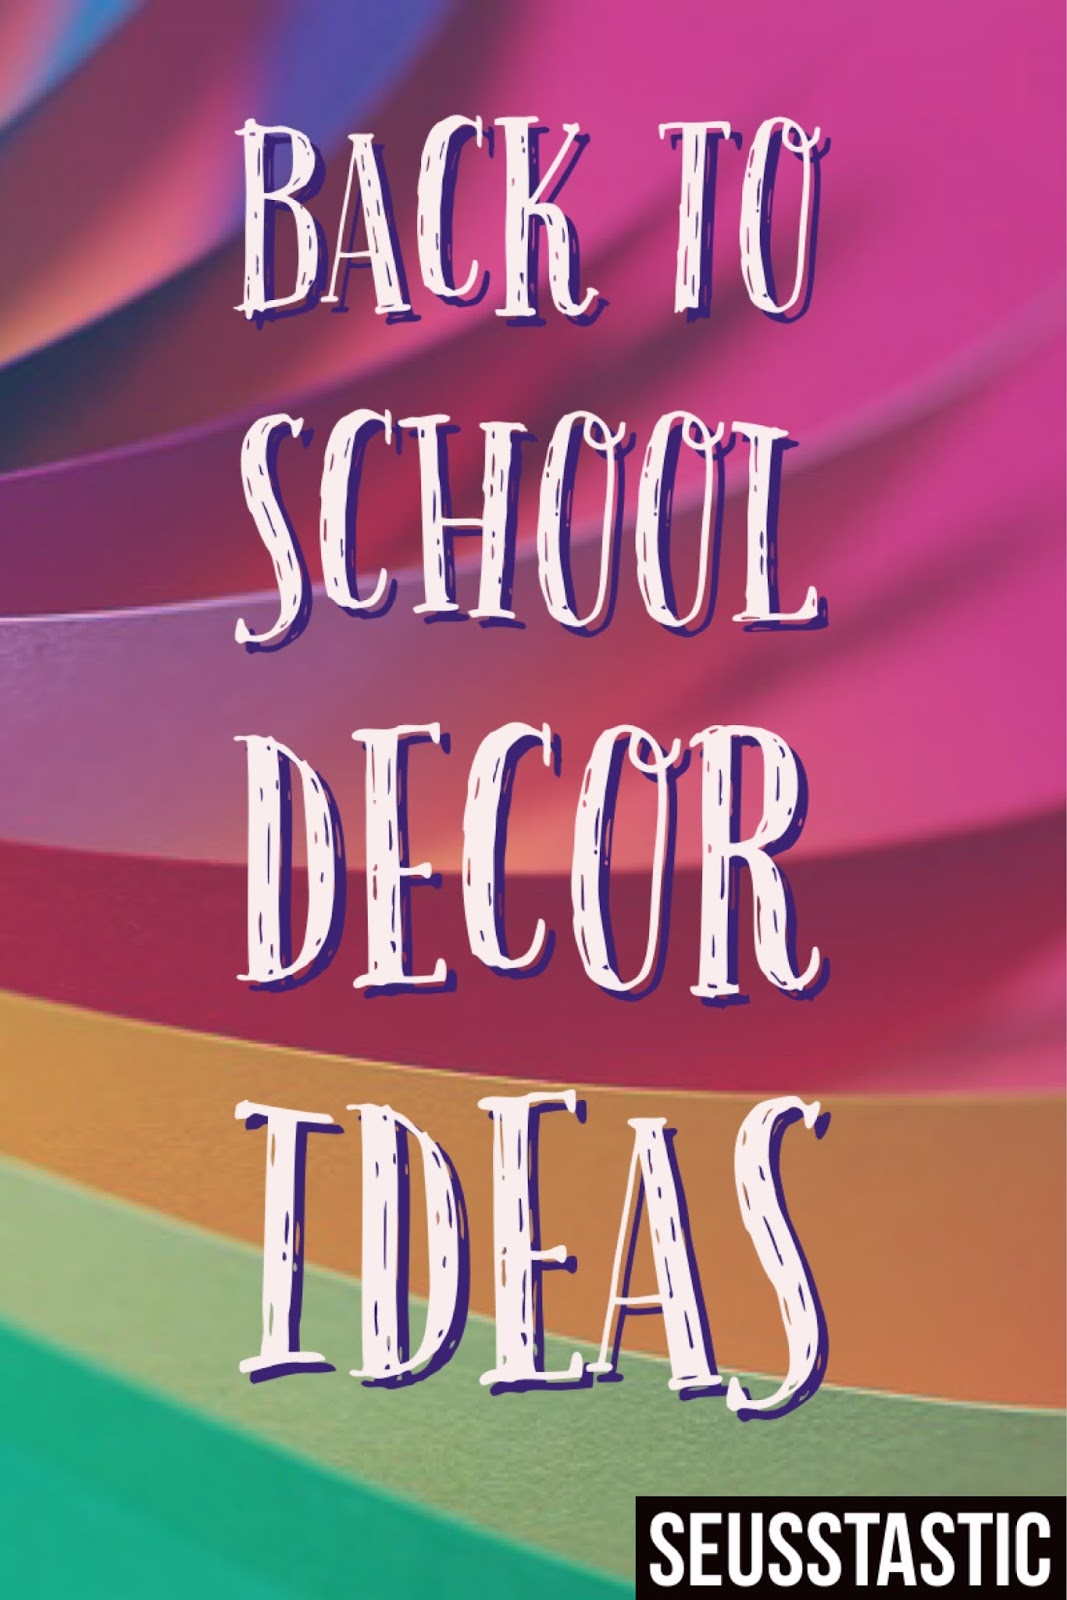 Classroom Decoration Ideas For Back To School ~ Seusstastic classroom inspirations back to school decor ideas